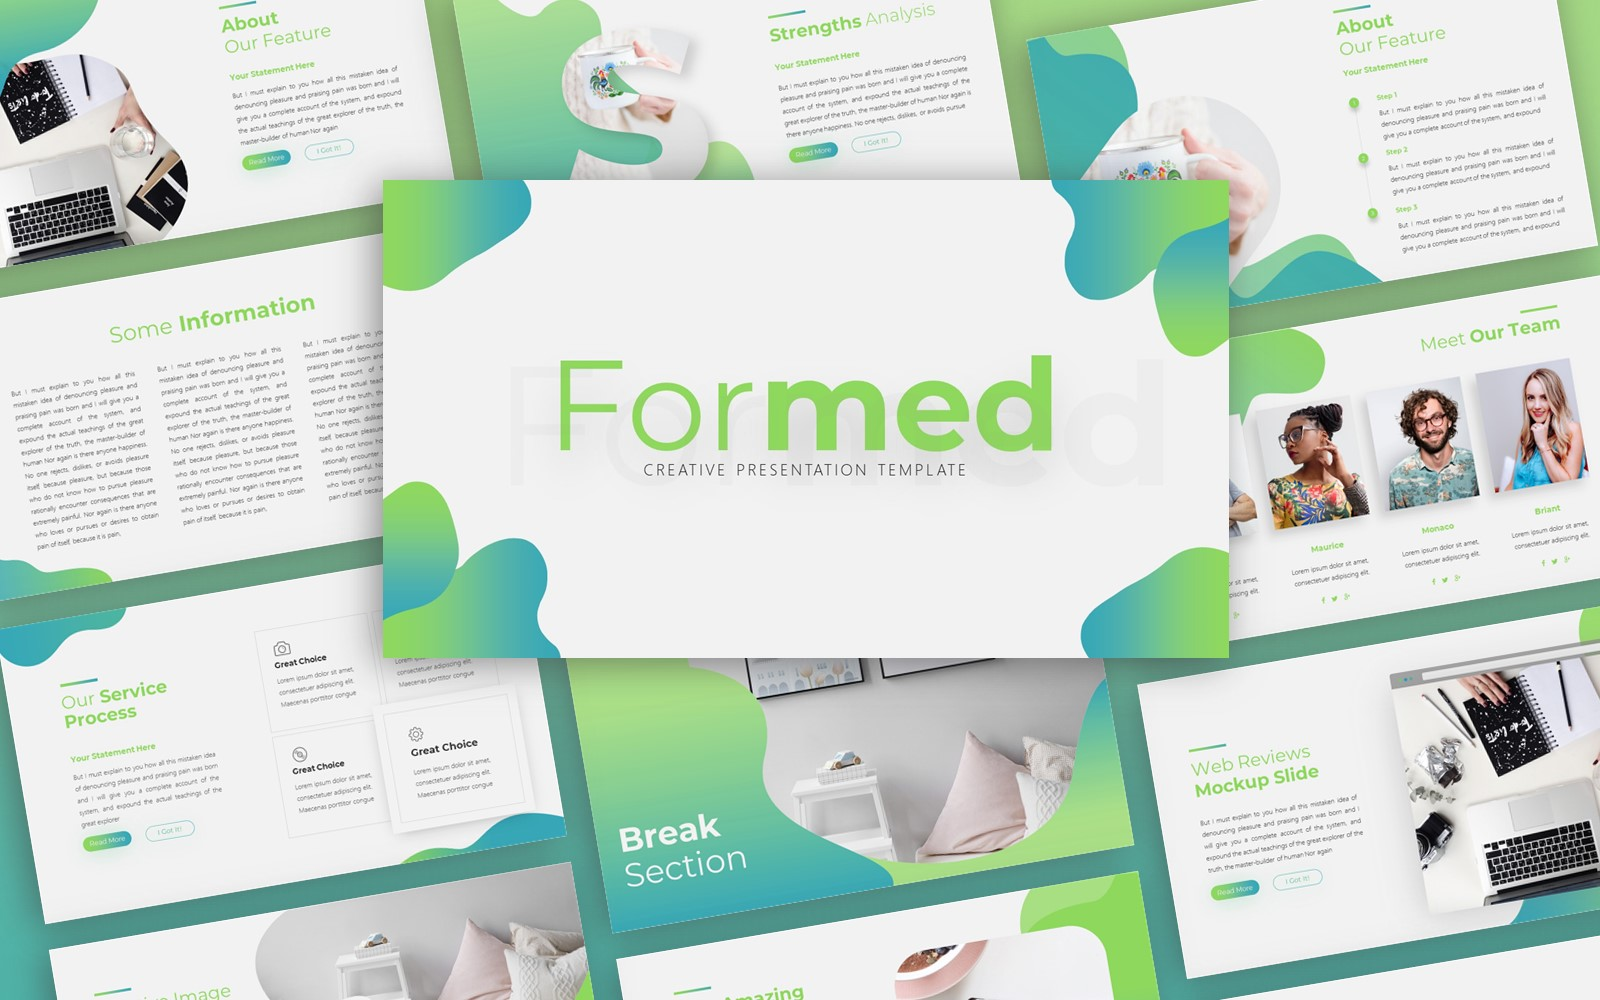 Formed Creative Presentation PowerPoint Template